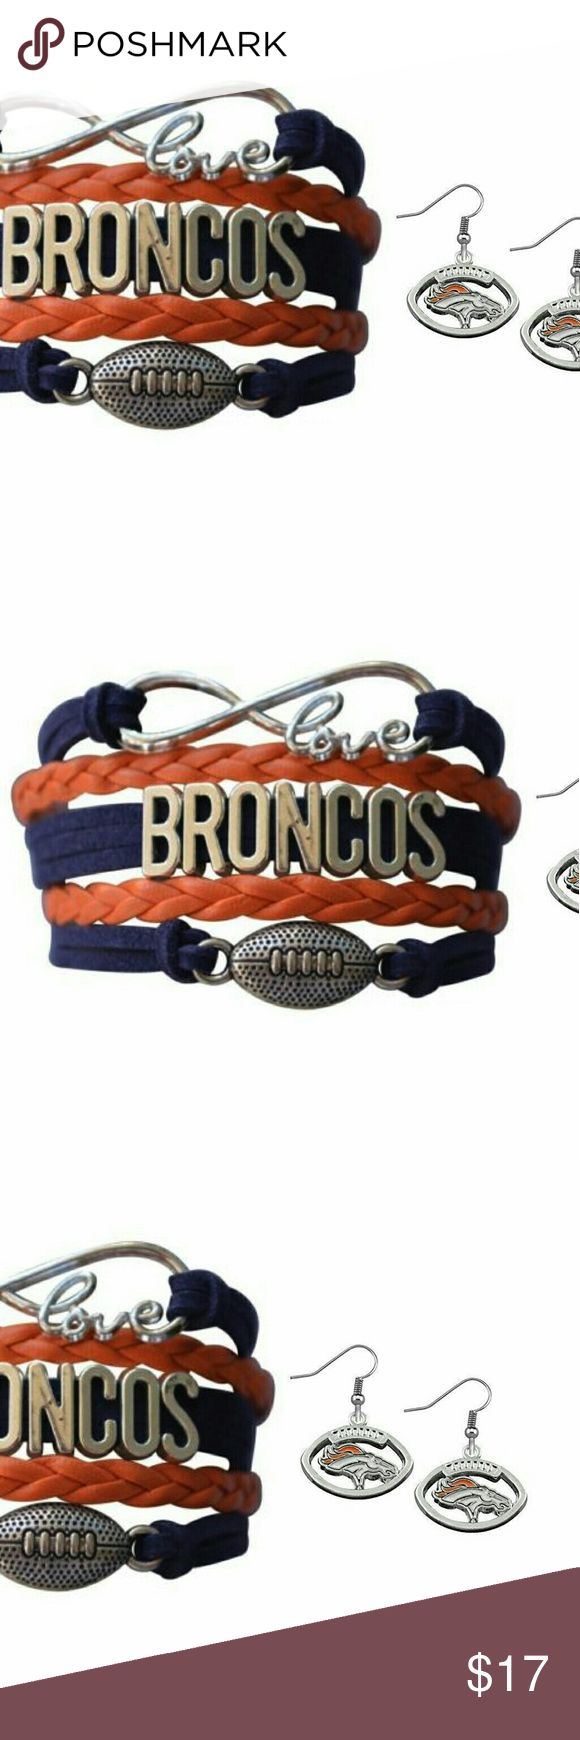 Denver Broncos Jewelry Set Denver Broncos Jewelry Set - New Denver Broncos Bracelet & Earring - NFL Jewelry  WHO LOVES FOOTBALL?! Show your Pride for the Denver Broncos with this antique silver charm bracelet and earrings set. Absolutely adorable, you'll be in a hurry to show it off to your friends and family!  Perfect Gift for Broncos Football Fans!! Jewelry